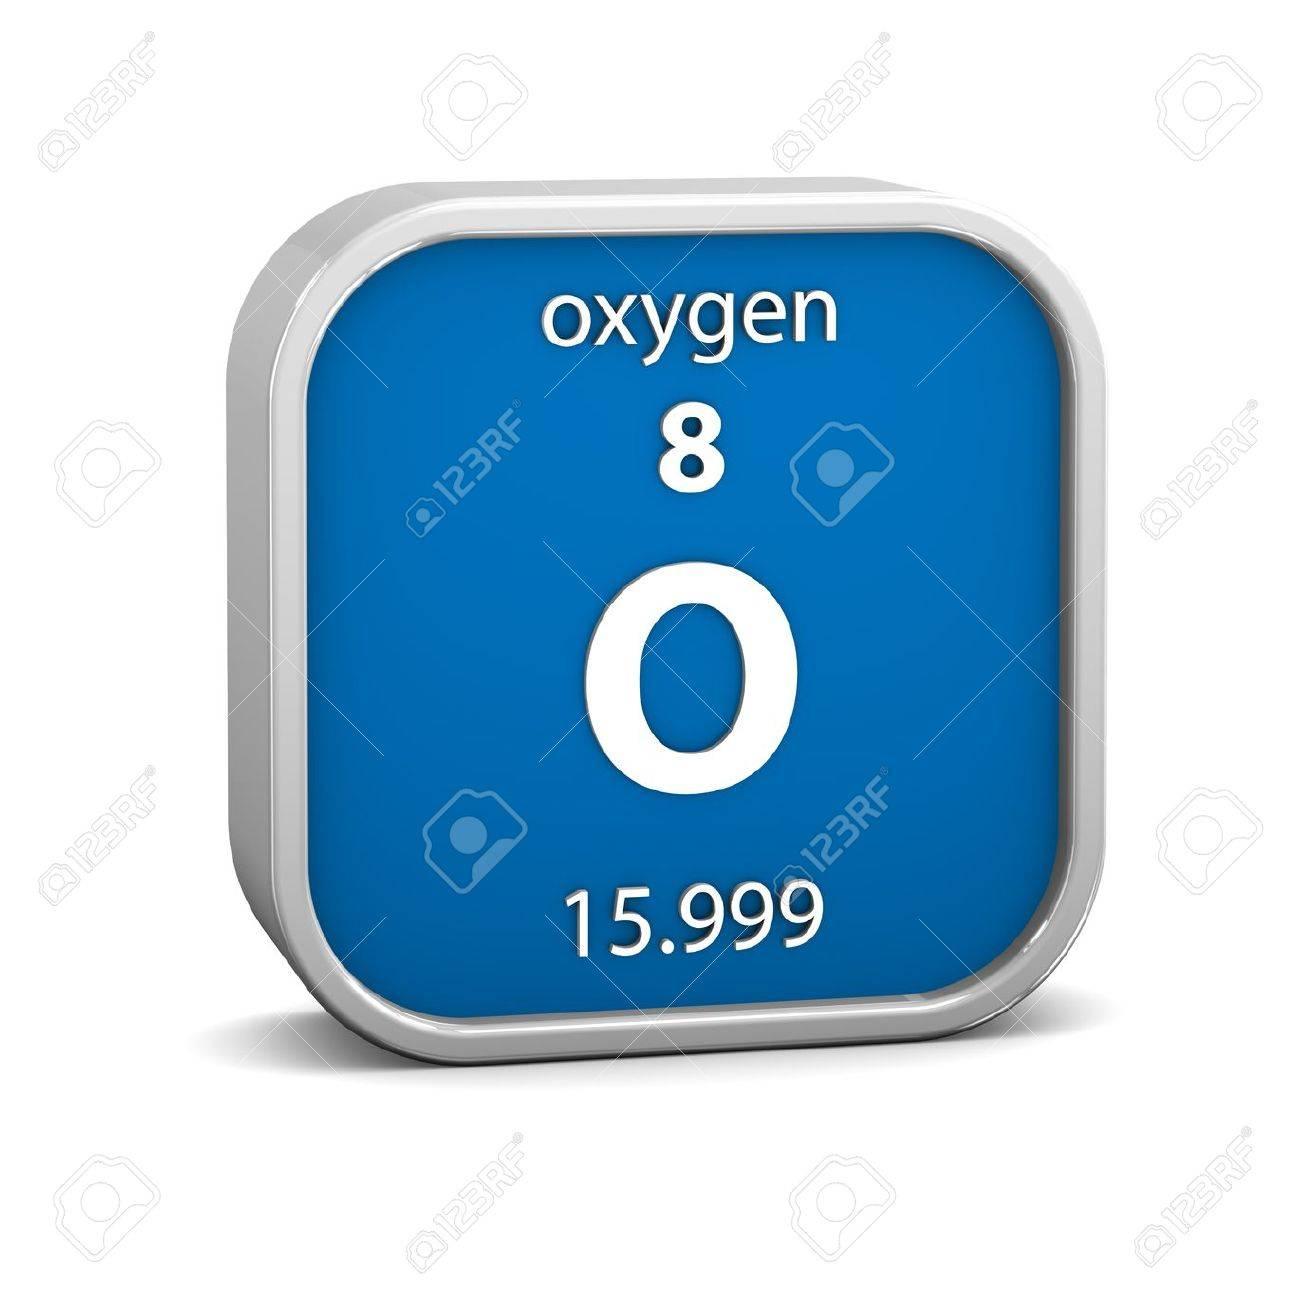 Periodic table oxygen facts image collections periodic table images periodic table oxygen facts image collections periodic table images oxygen symbol periodic table image collections periodic gamestrikefo Images